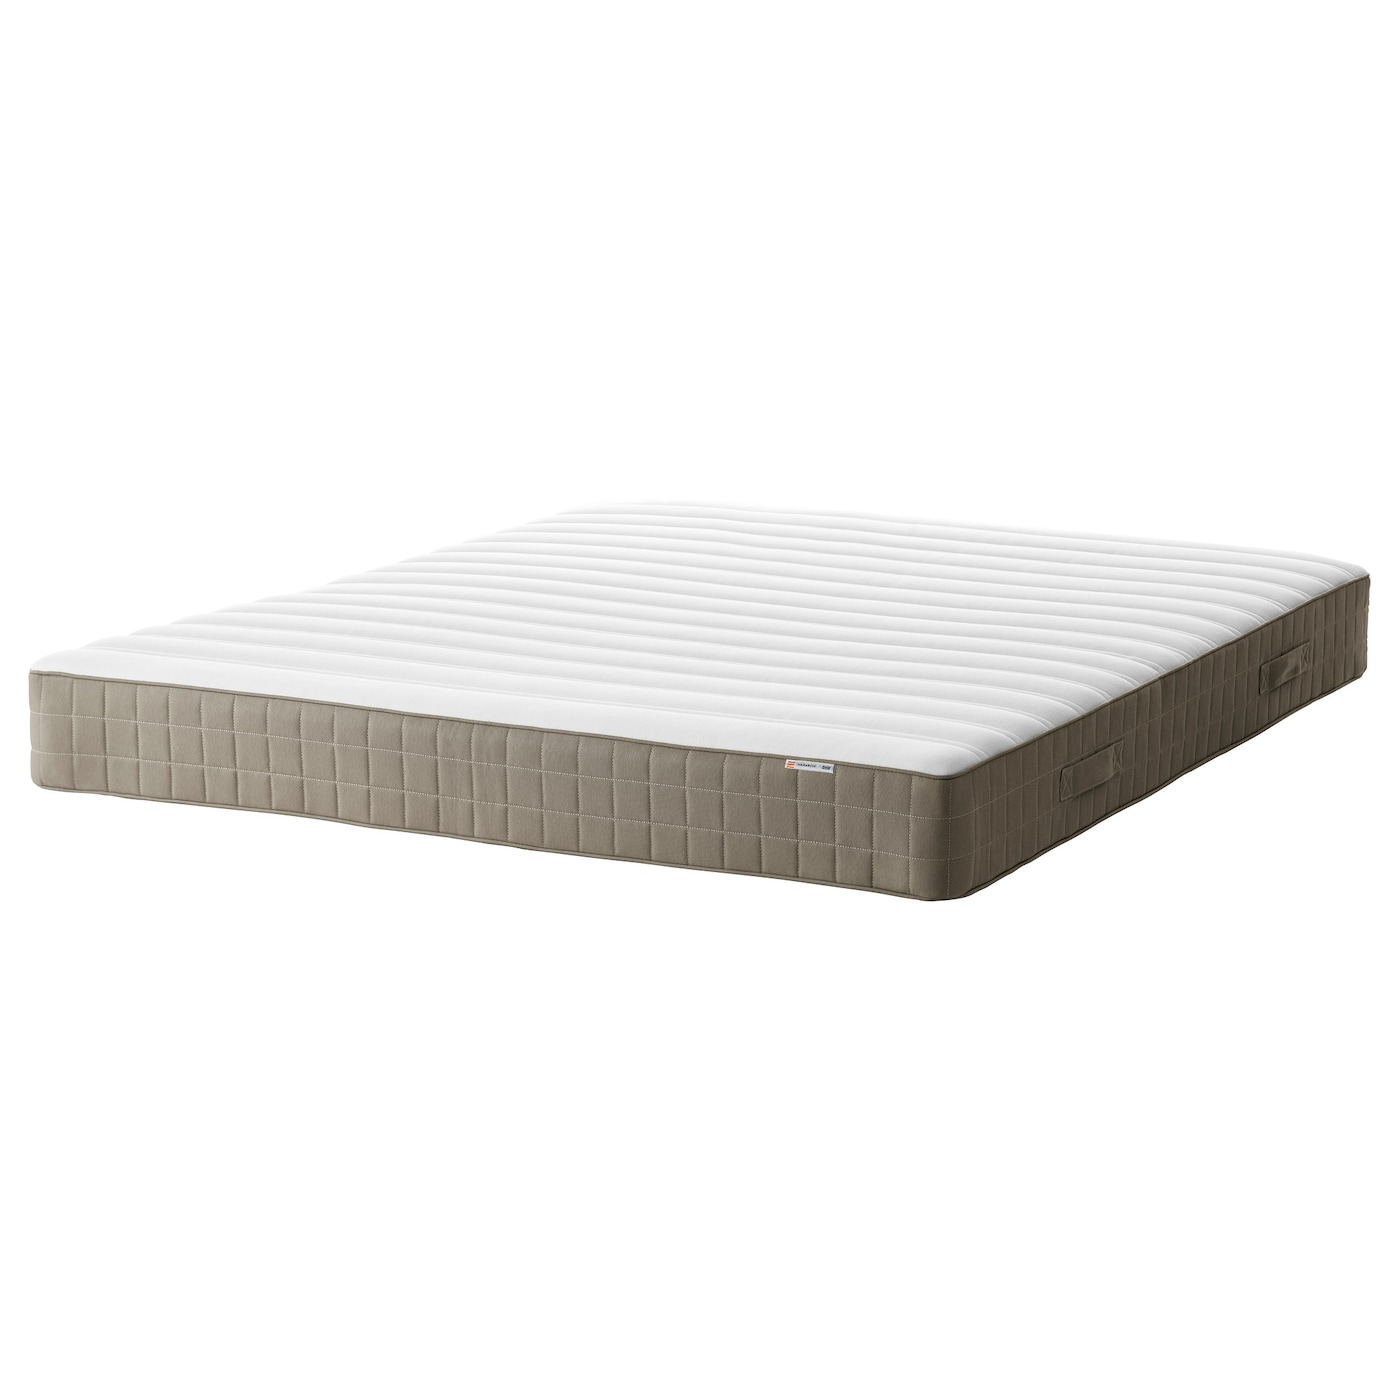 Hamarvik sprung mattress firm dark beige standard king ikea for Matelas 180x200